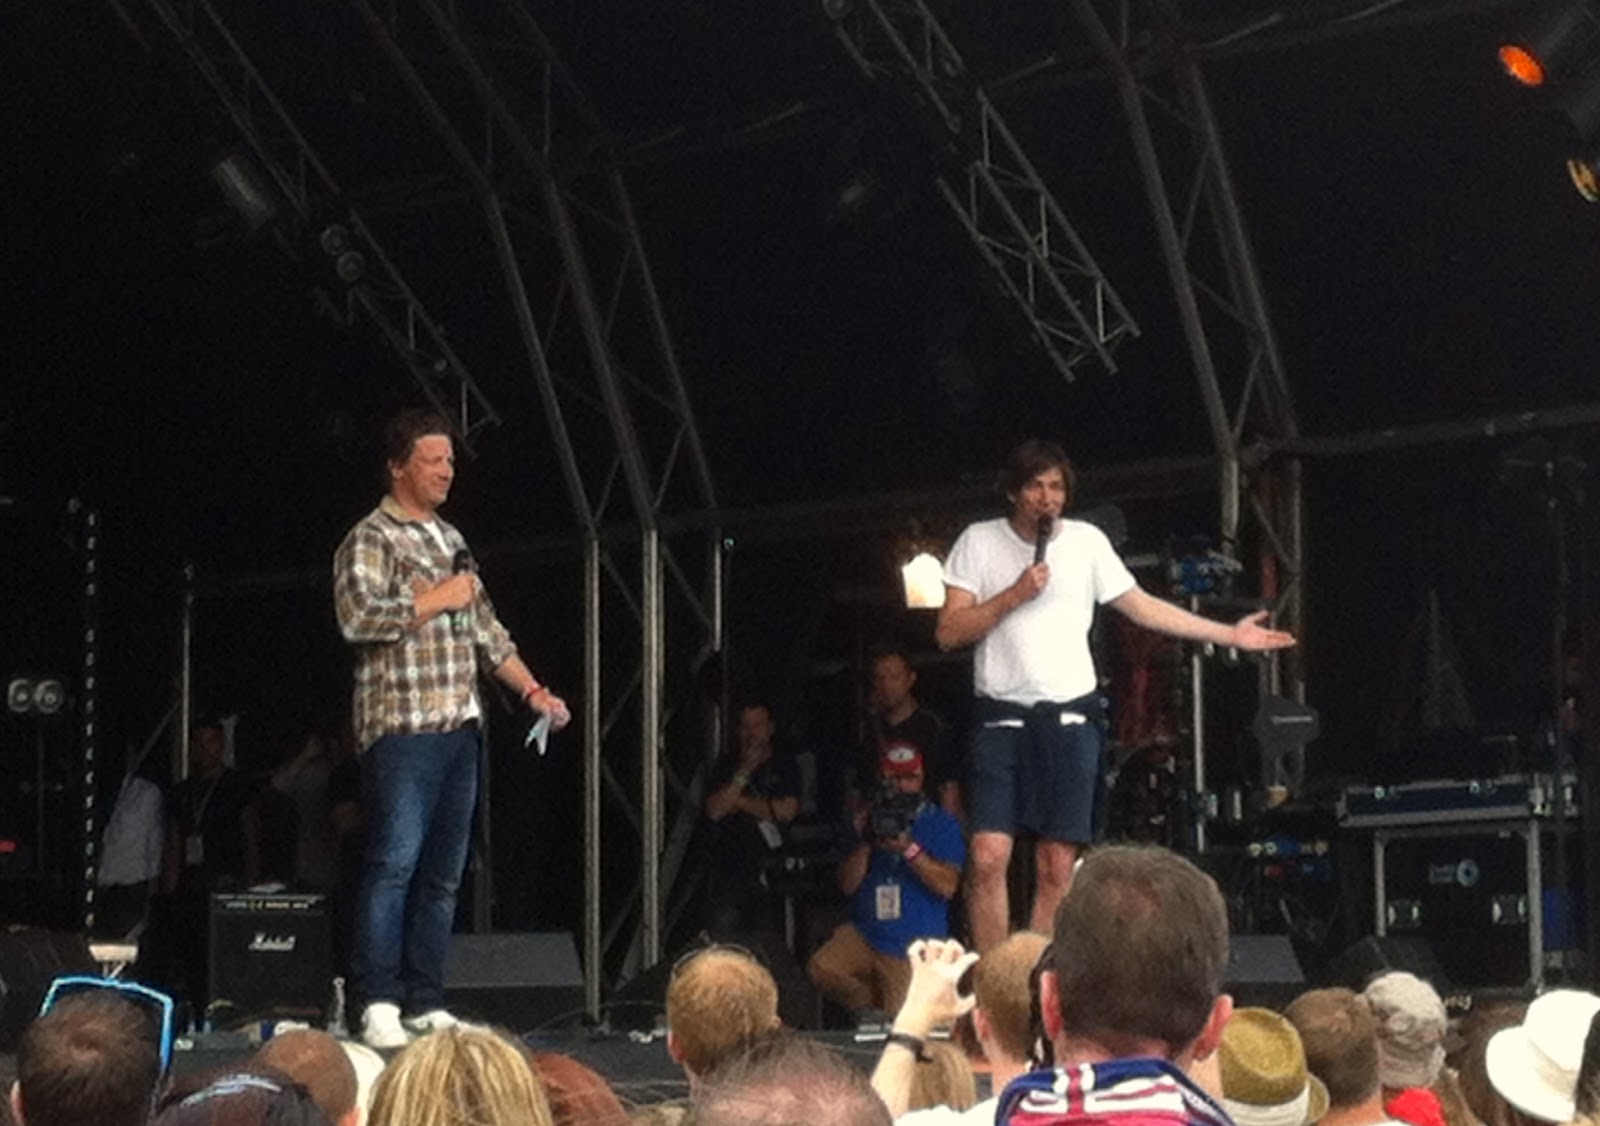 Jamie Oliver and Alex James declaring the day open!